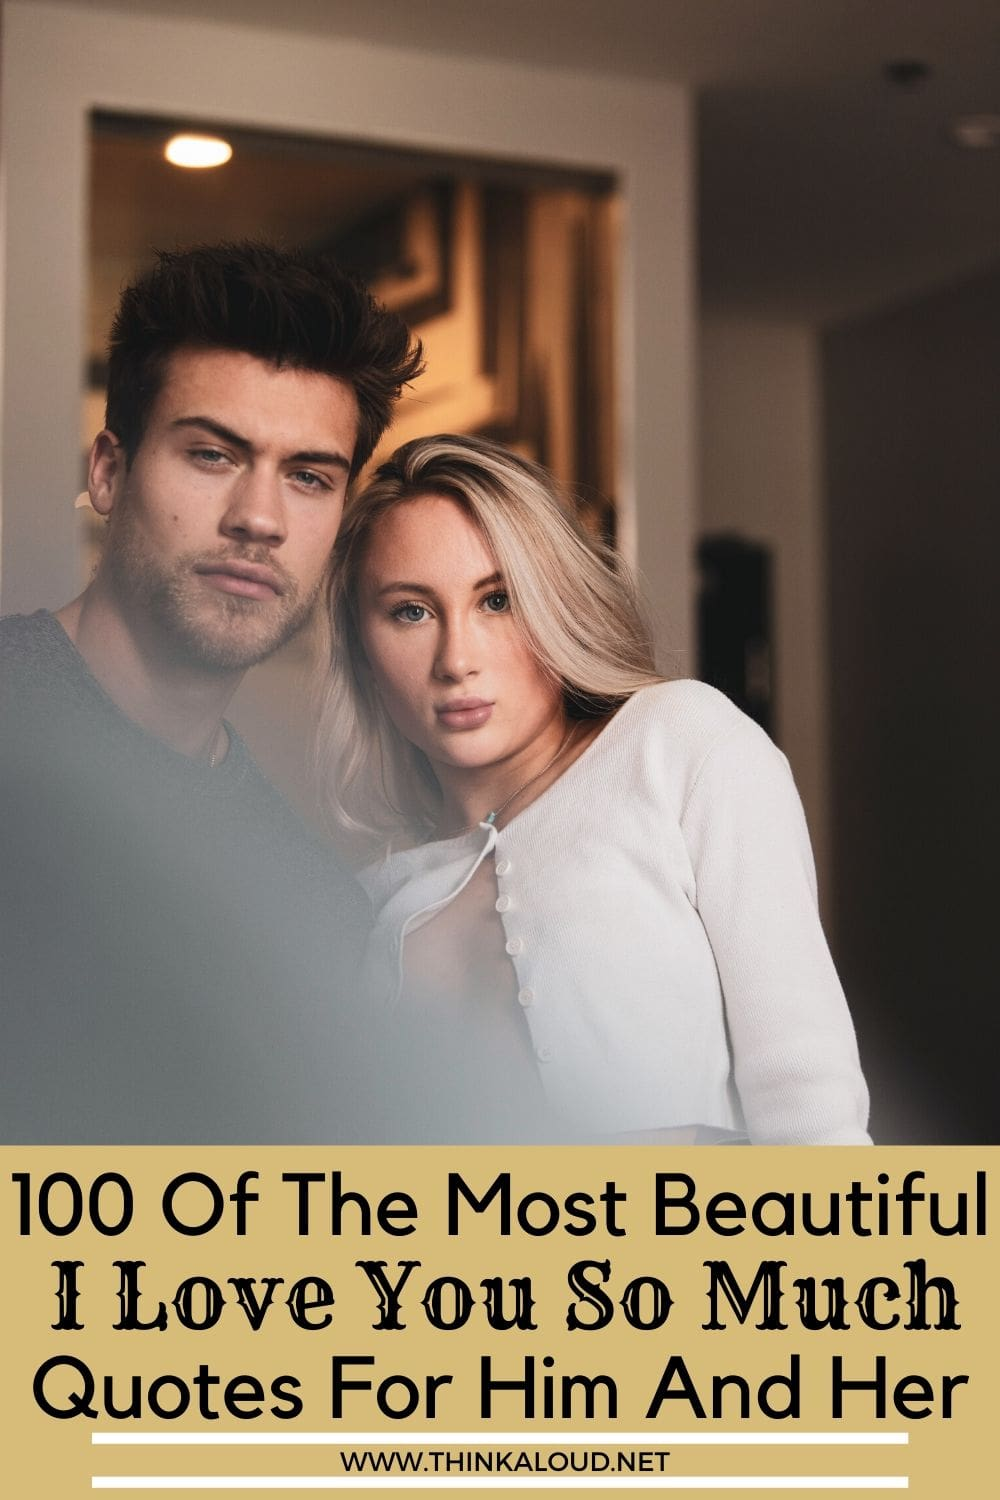 100 Of The Most Beautiful I Love You So Much Quotes For Him And Her